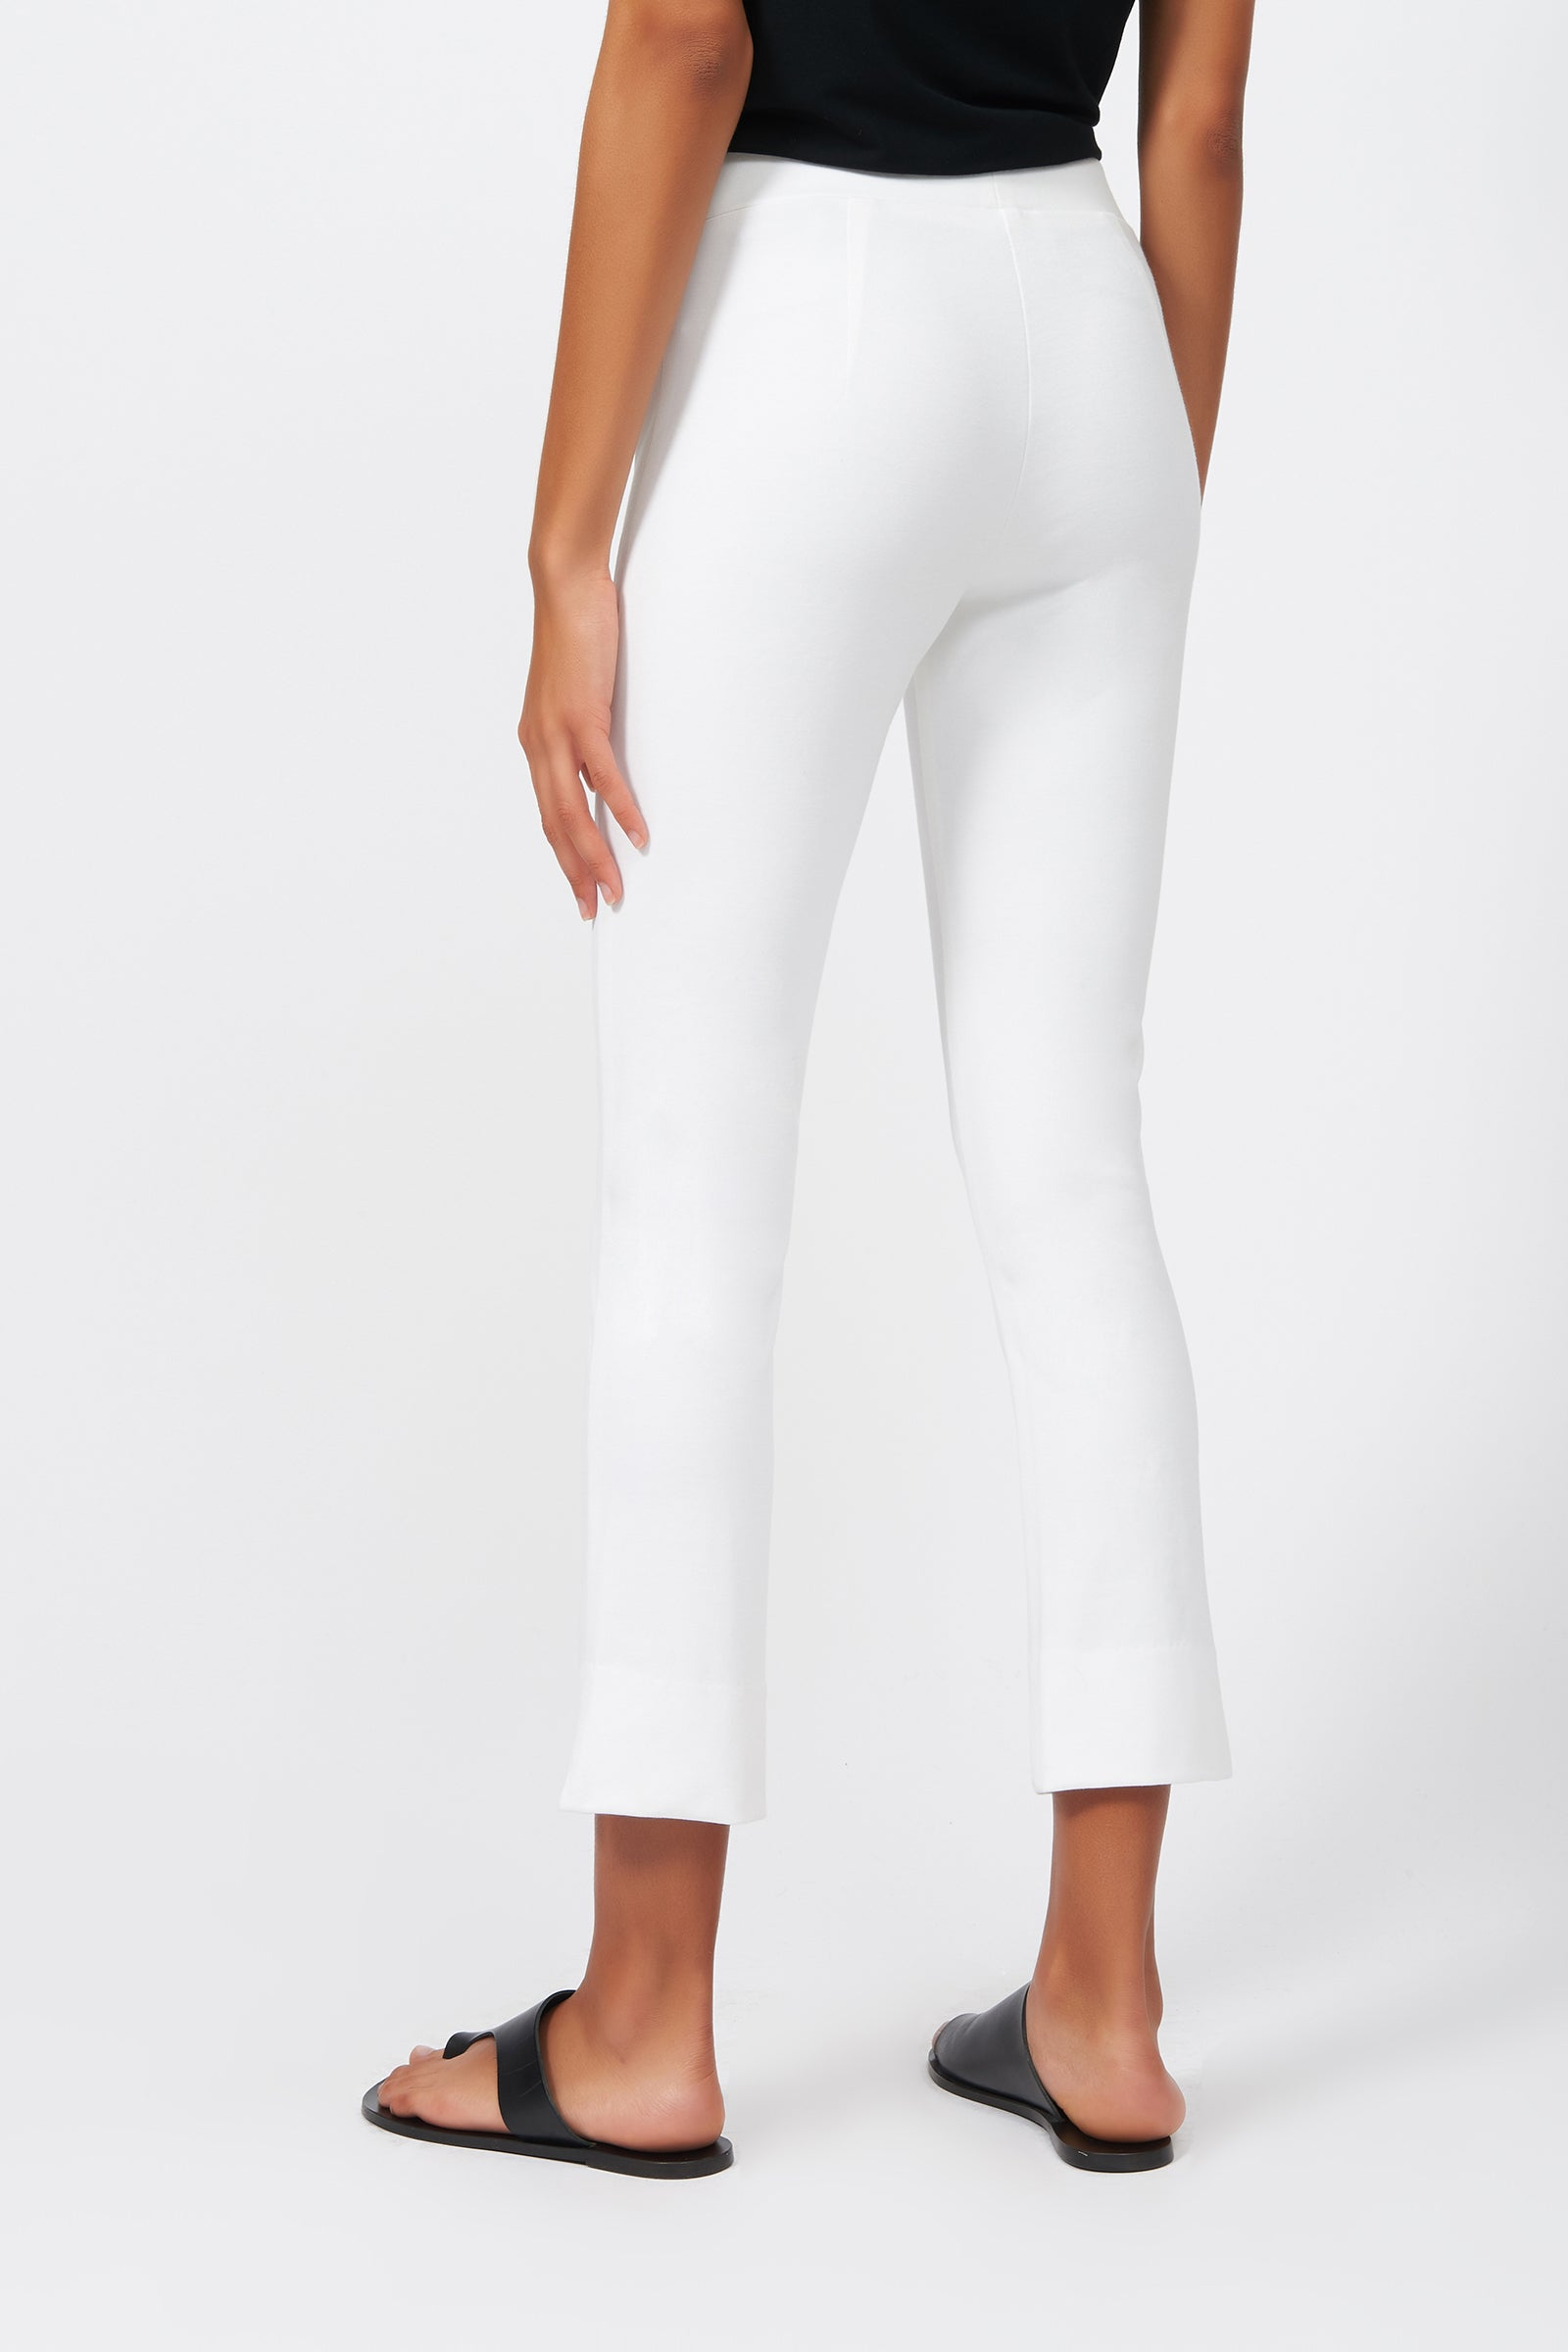 Kal Rieman Pintuck Slit Capri in White on Model Back View